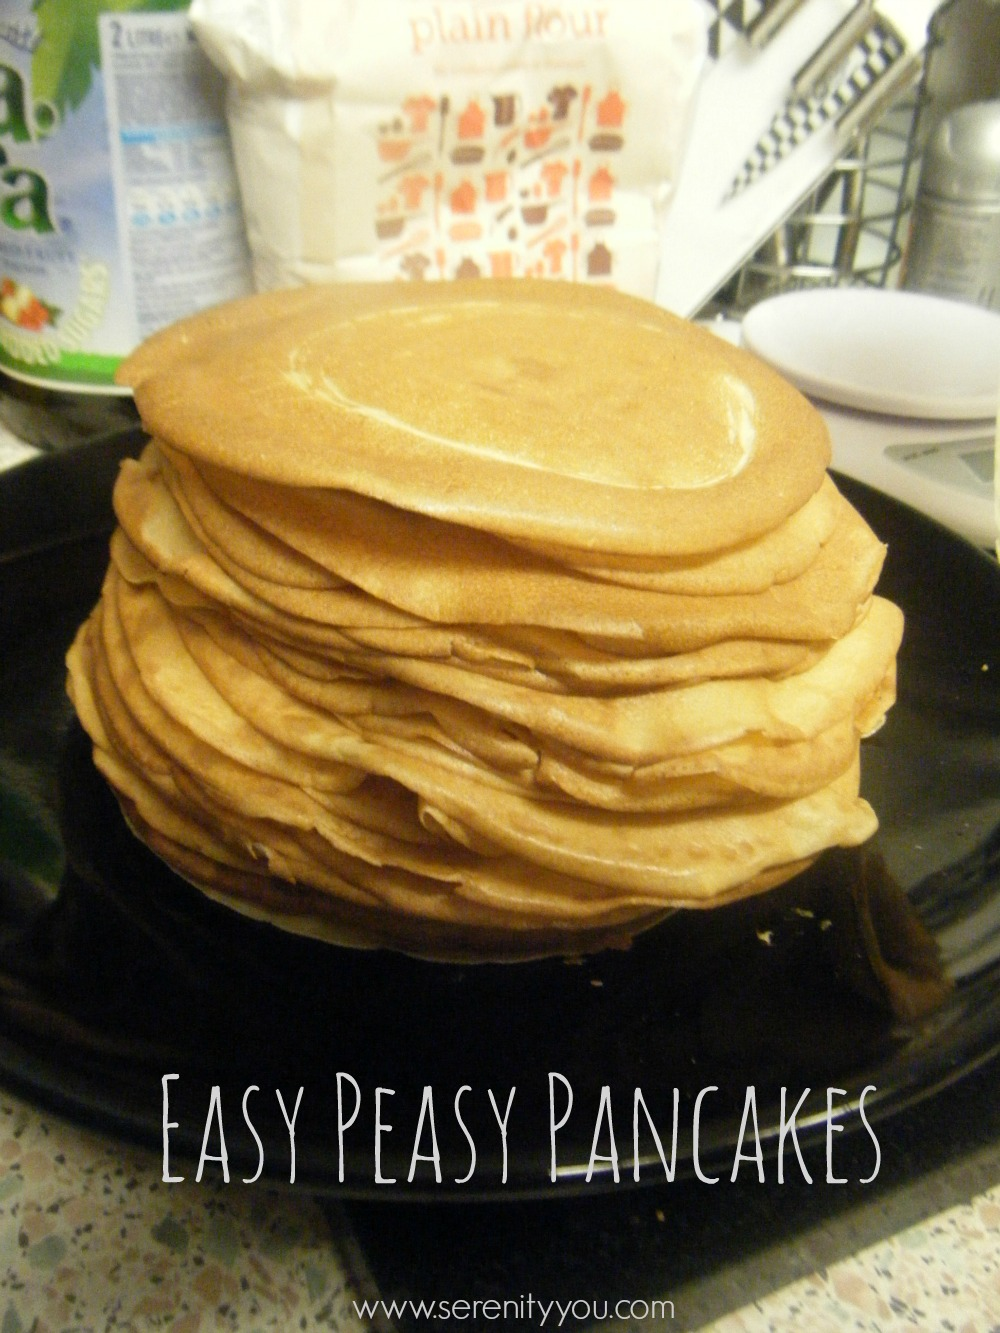 Easy Peasy And Fun: Easy Peasy Pancakes